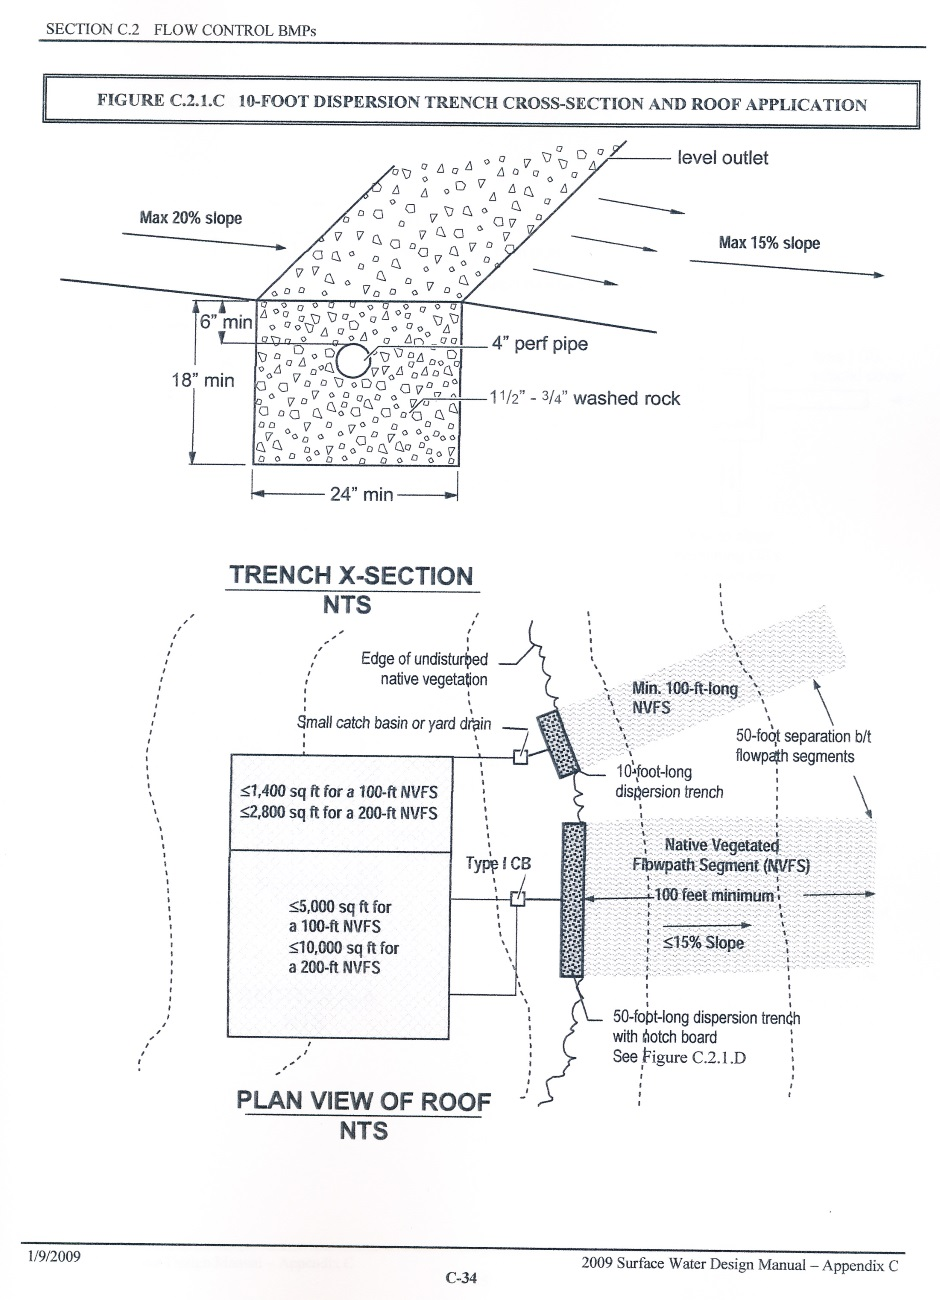 Trench drain detail - Drainage Plan